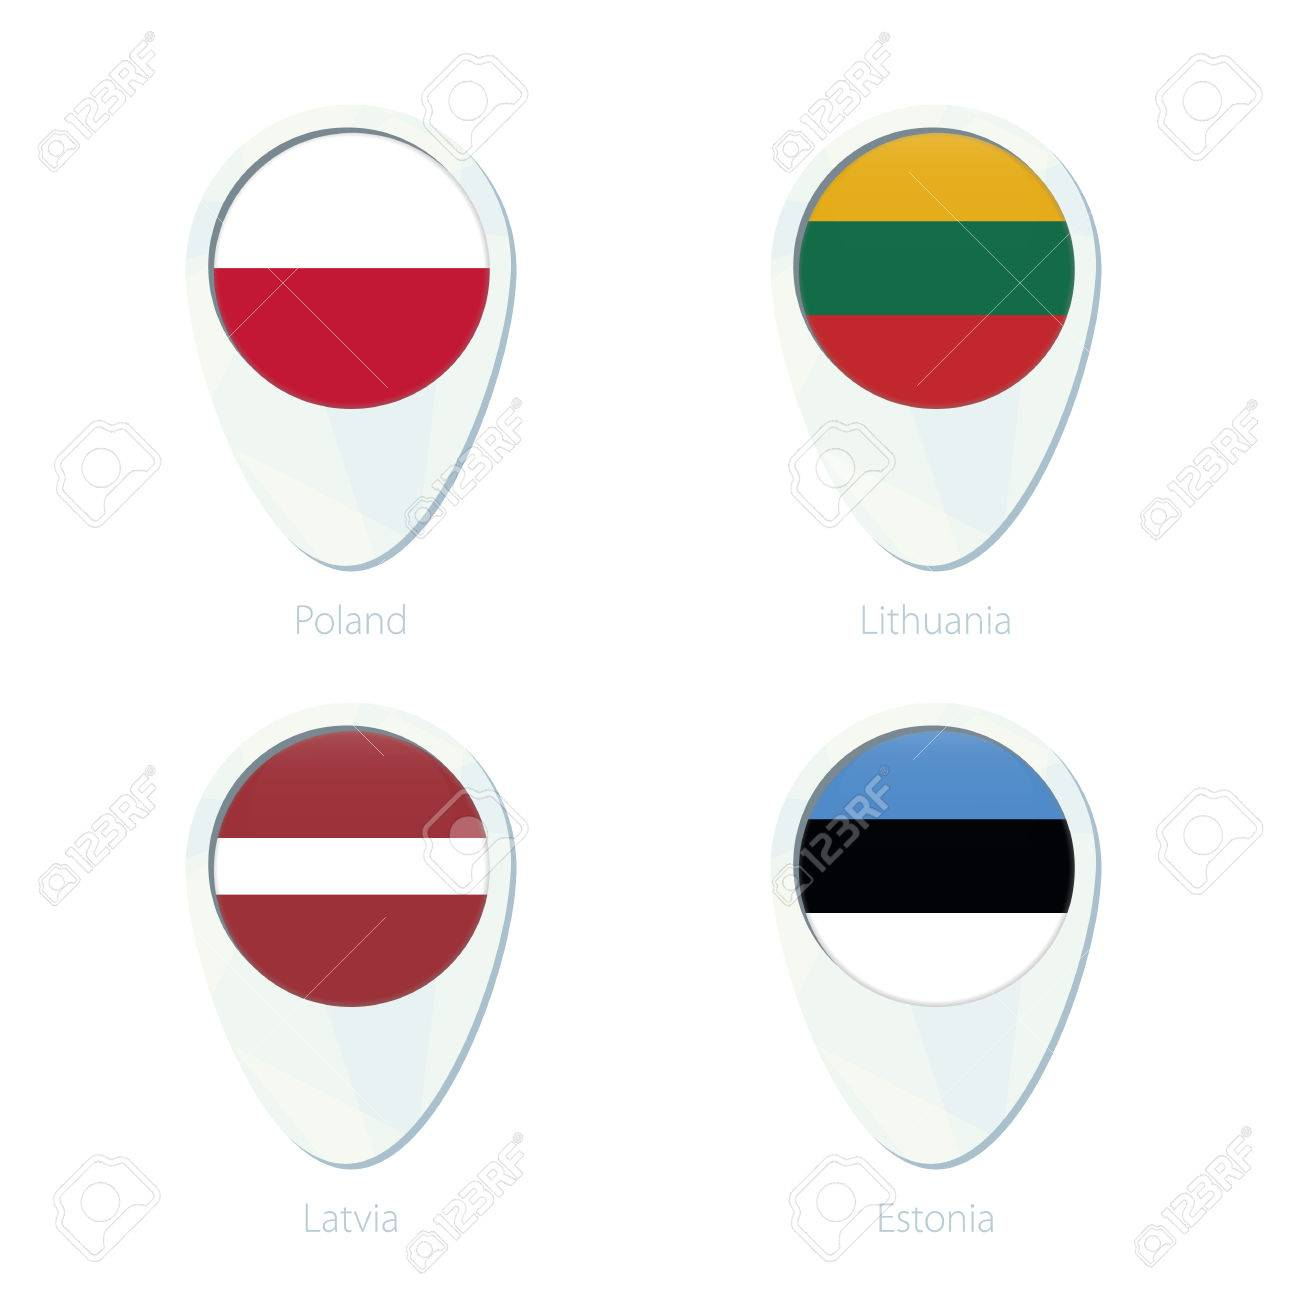 Poland Lithuania Latvia Estonia Flag Location Map Pin Icon